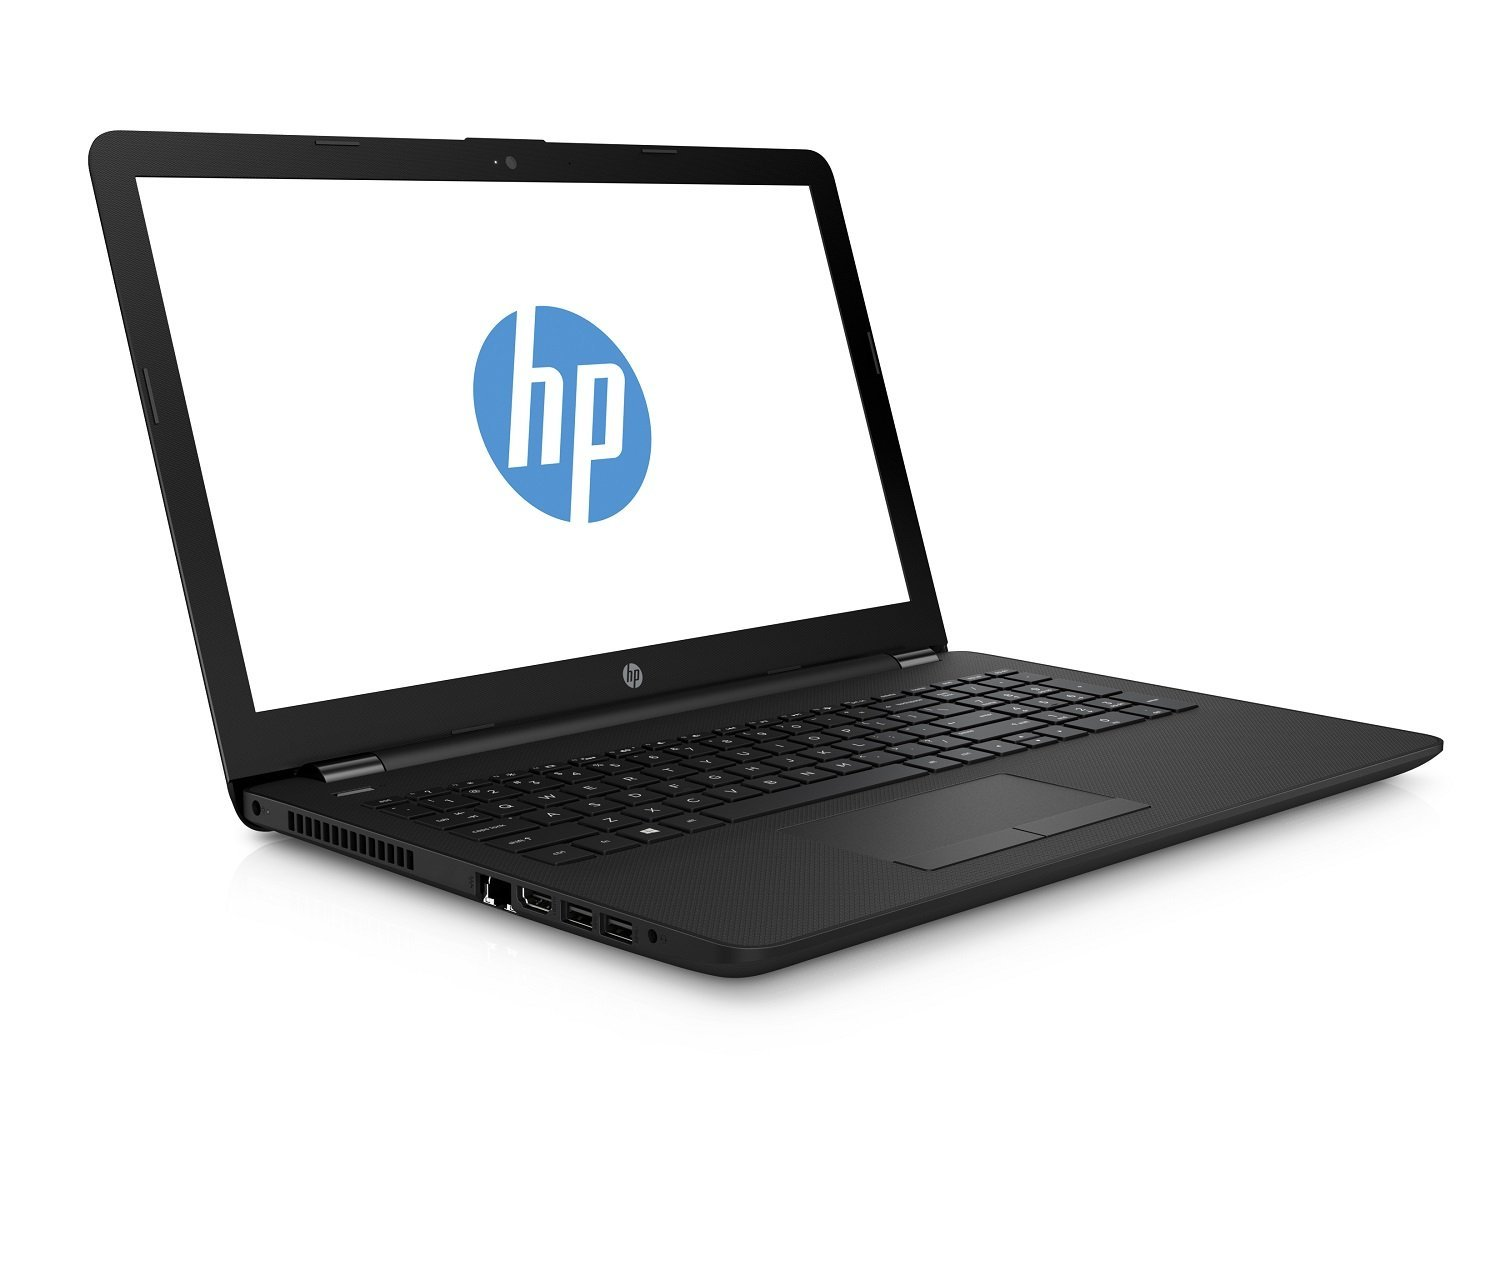 "HP 15-bs076nf - PC Portable 15"" Full HD Noir"